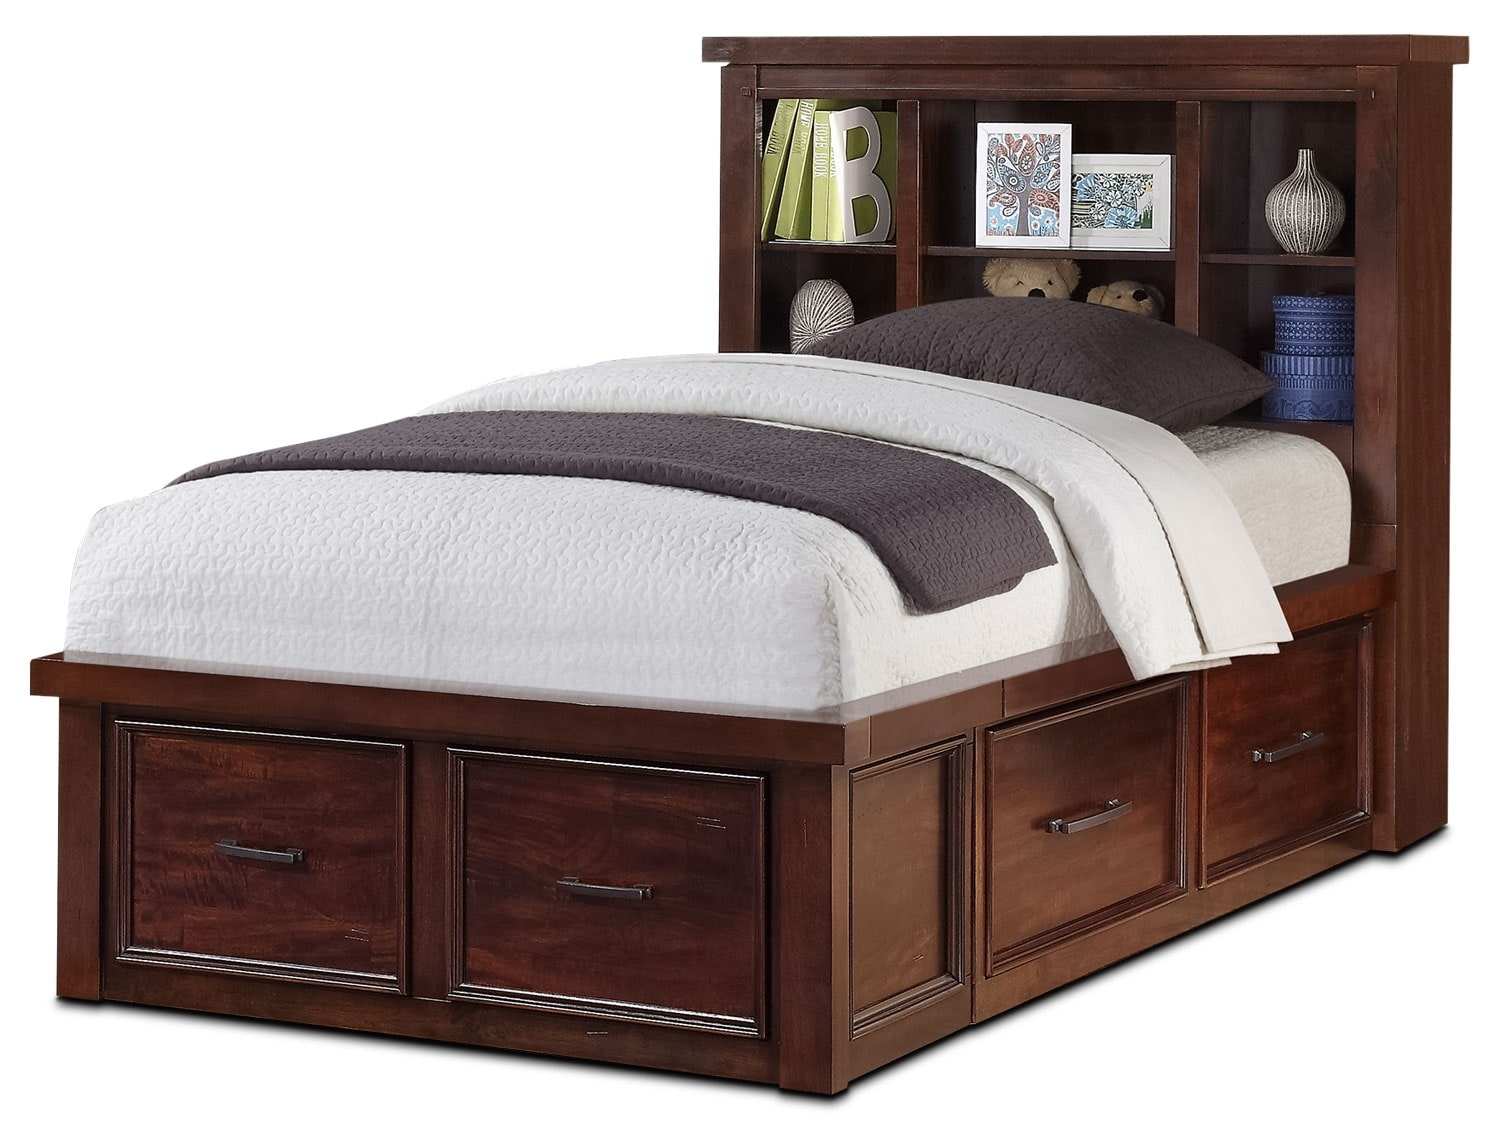 Sonoma Youth Twin Bookcase Storage Bed